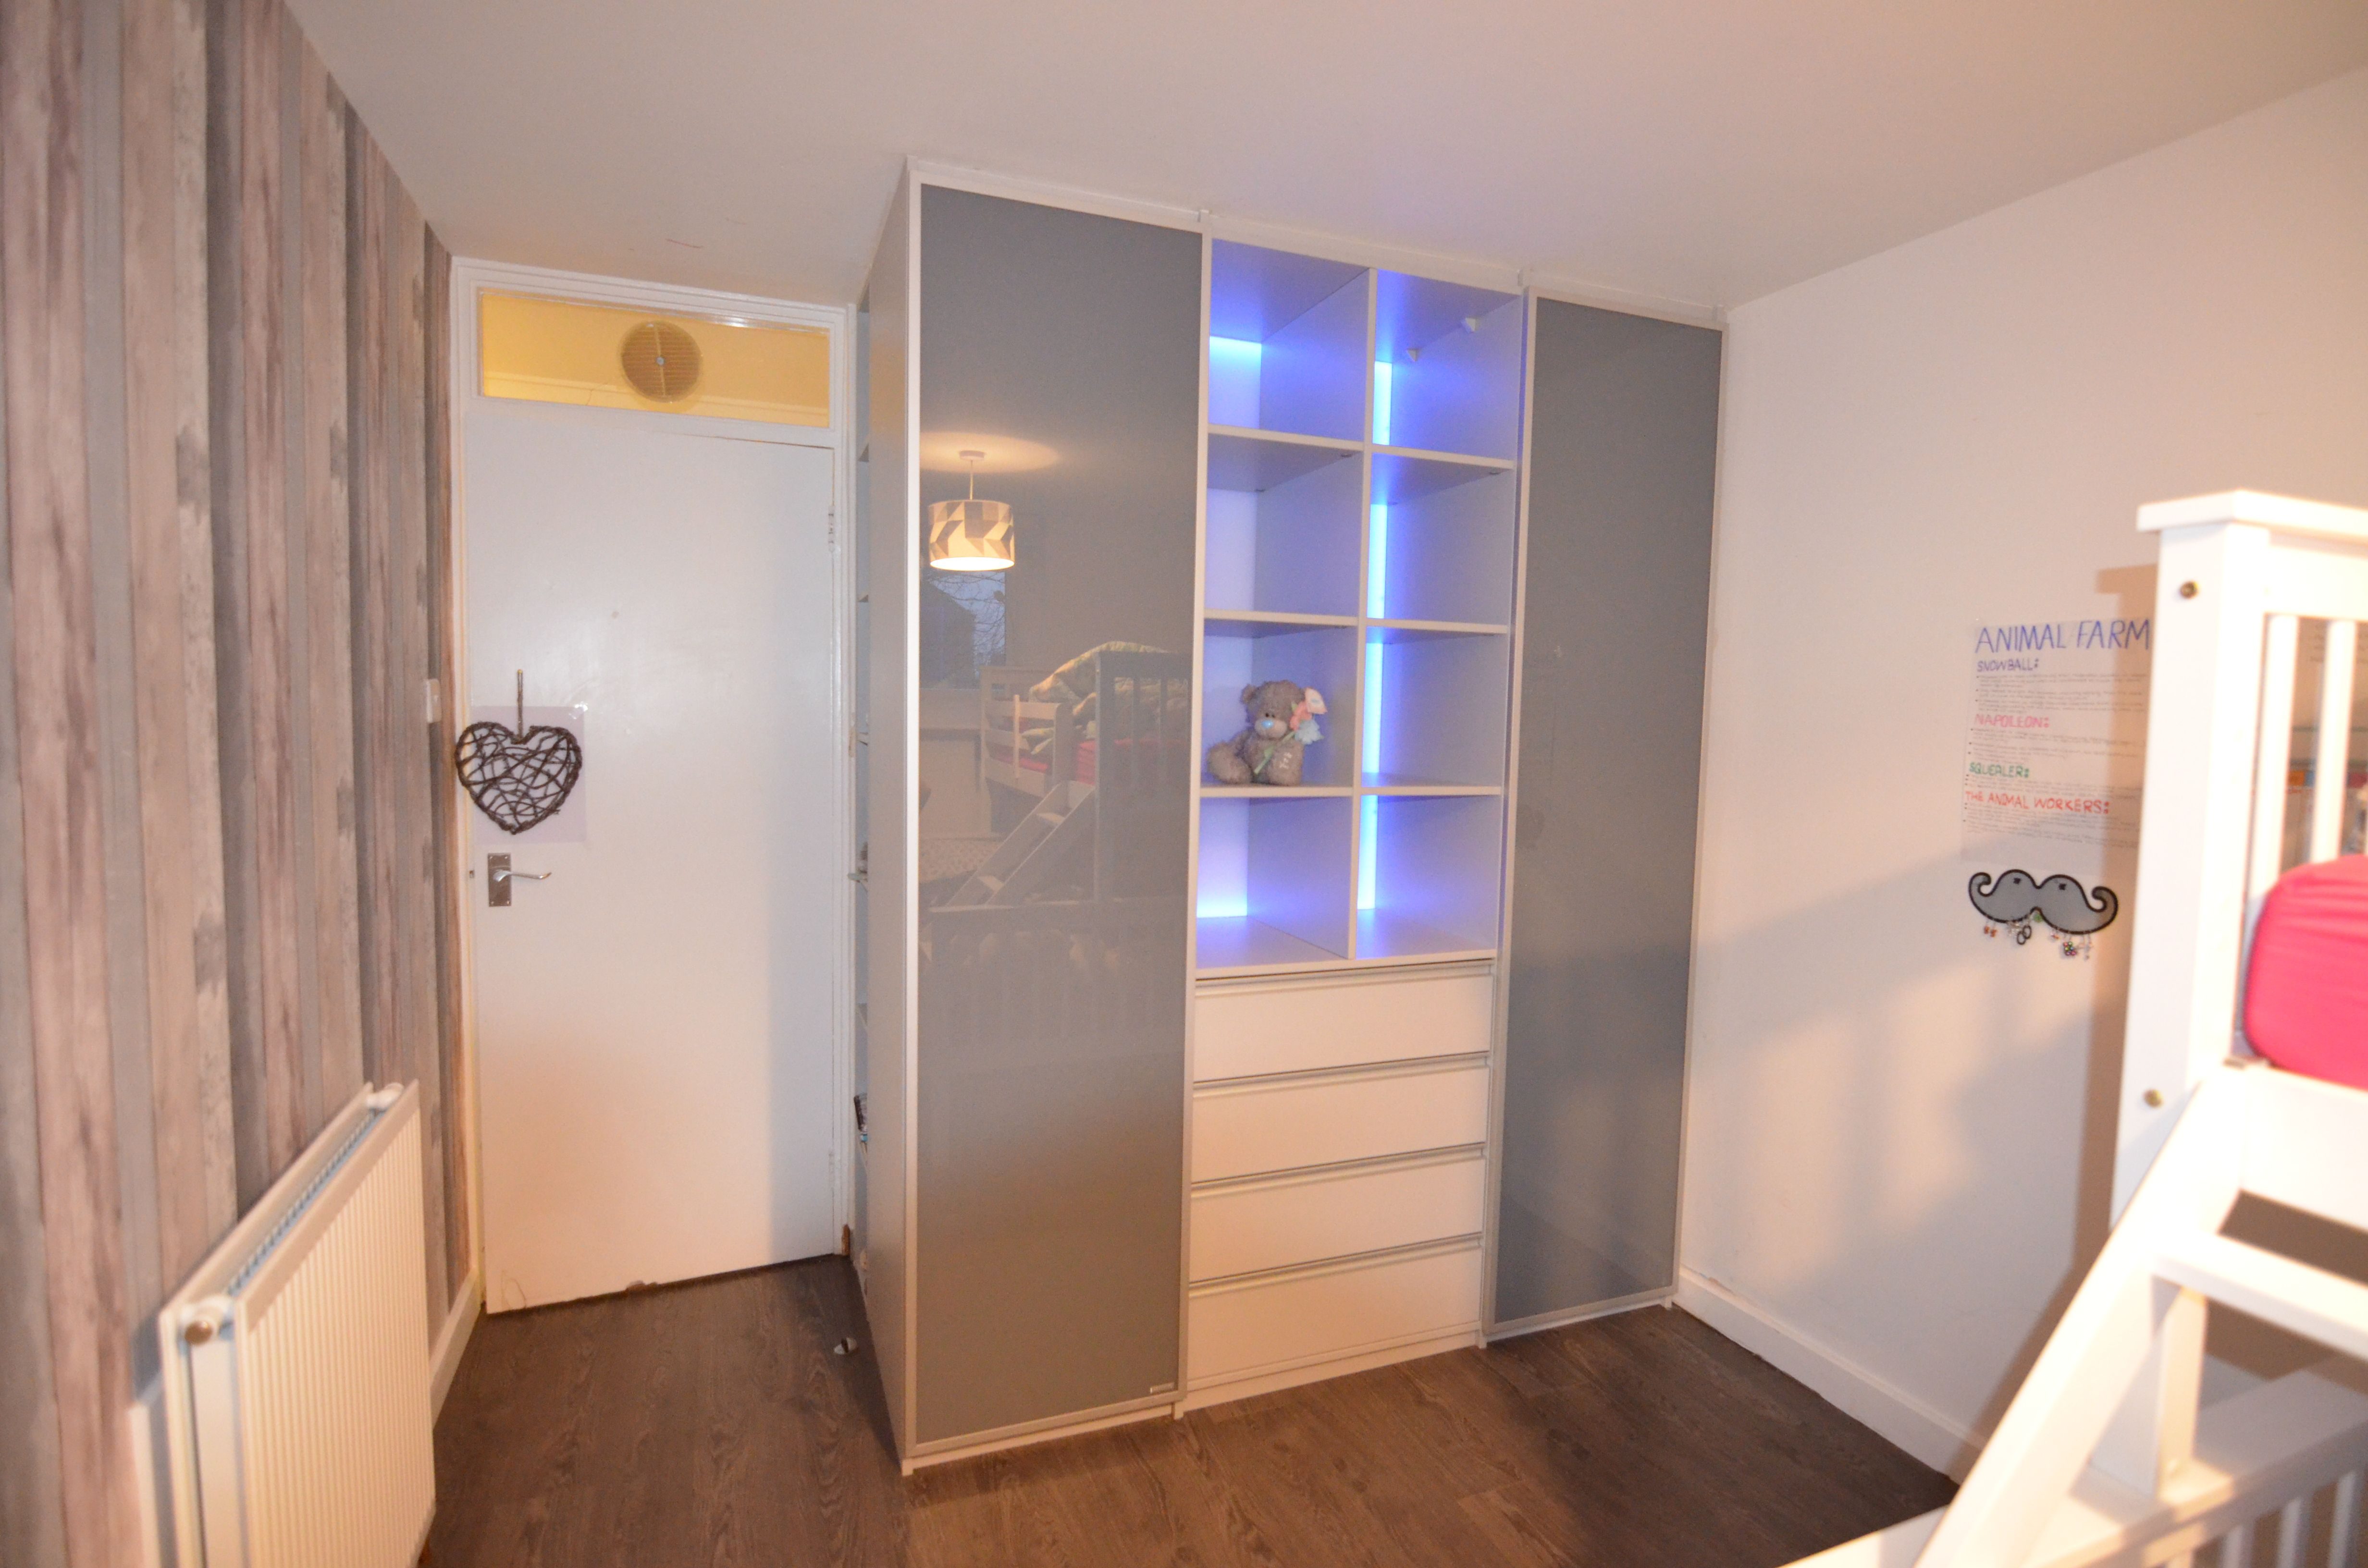 2 Door Wardrobe With Open Shelving With Coloured Led Lighting Fitted Bedroom Furniture Fitted Bedrooms Furniture Ireland